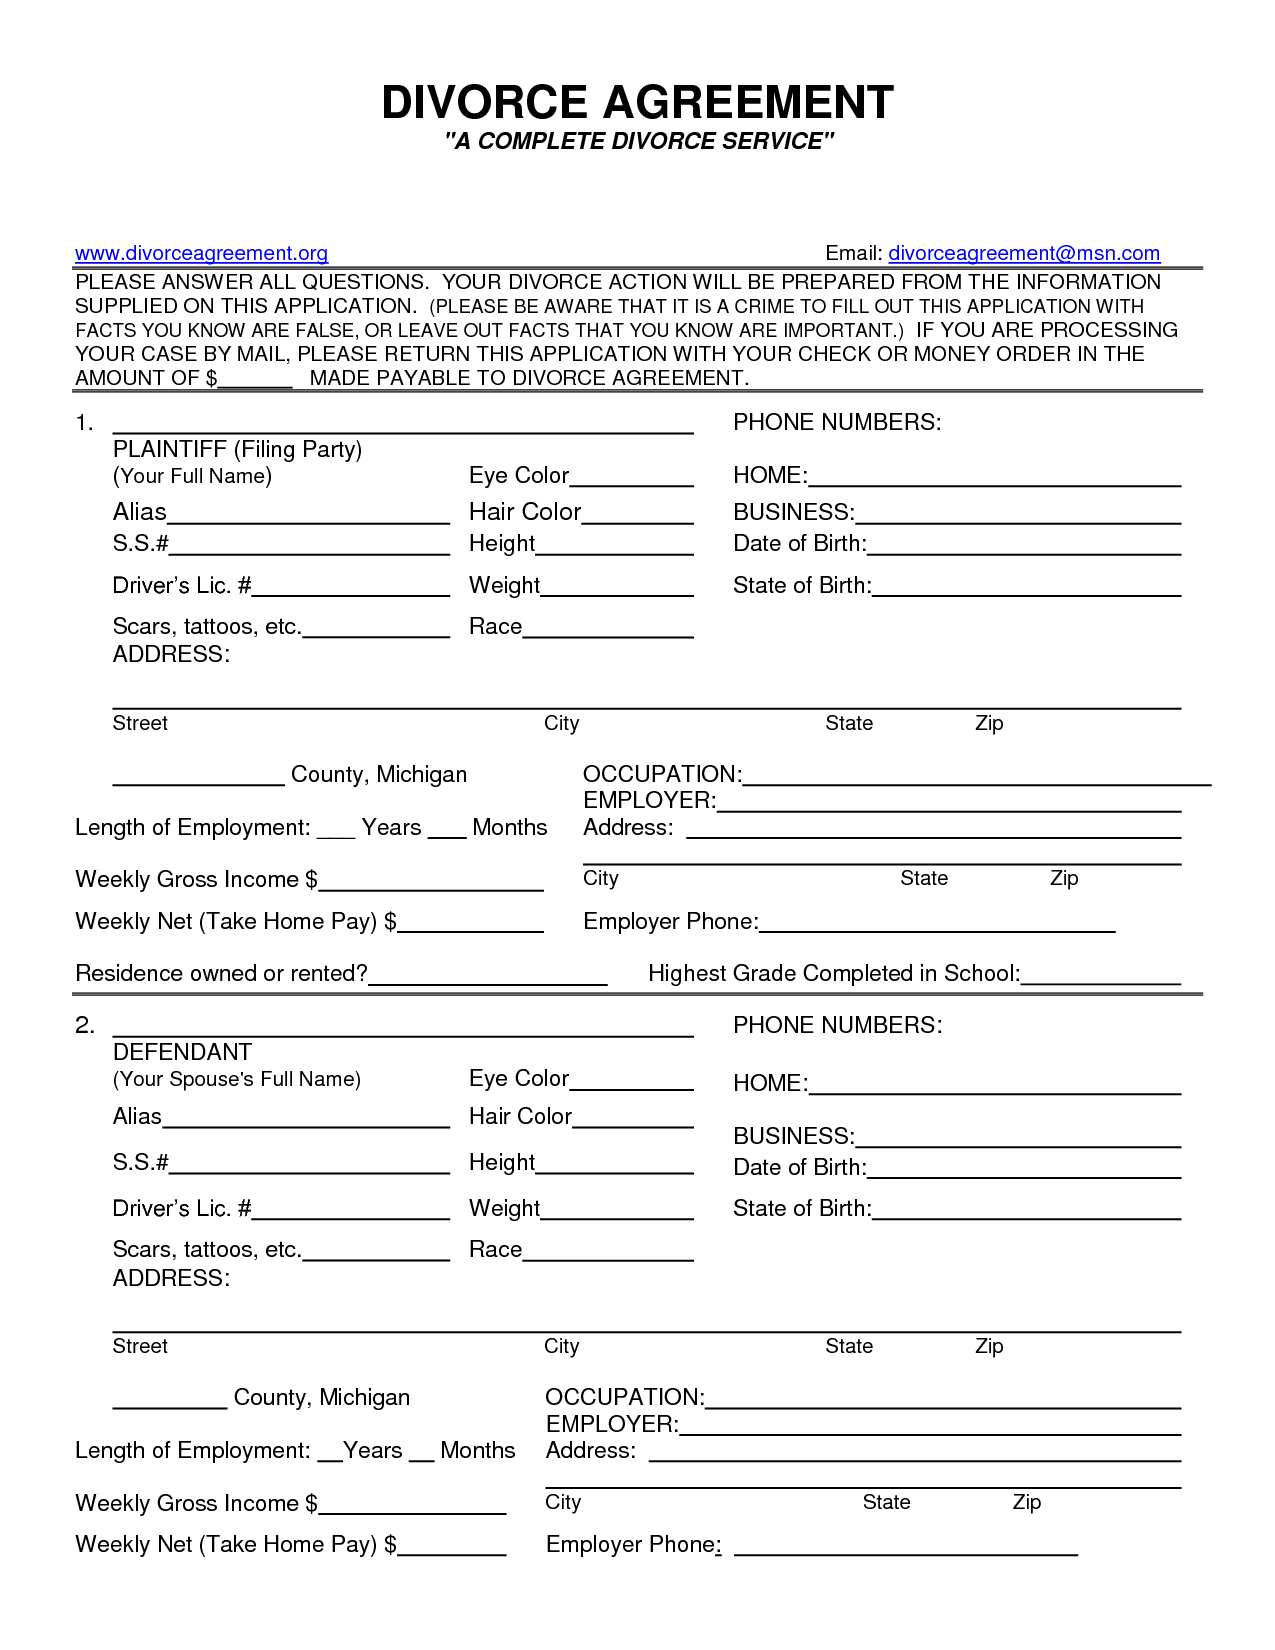 Fake Divorce Papers Pdf | Worksheet To Print | Fake Divorce Papers - Free Printable Divorce Papers For Illinois